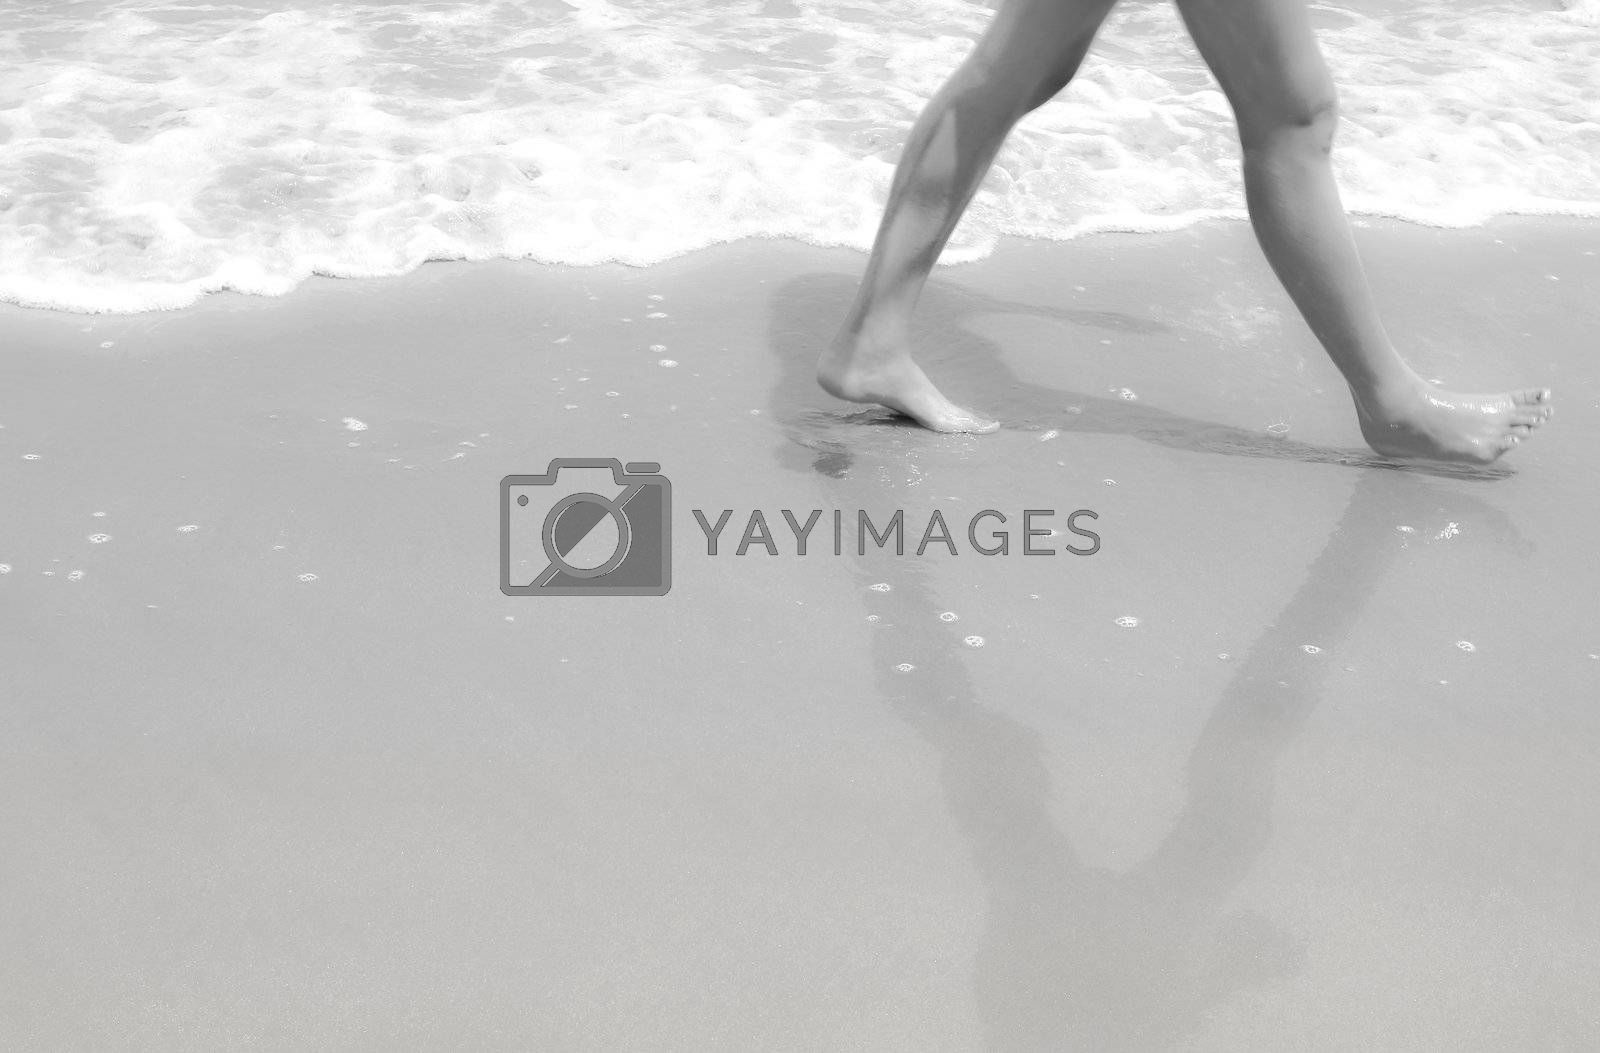 Legs walk on sand in black and white dreaming style